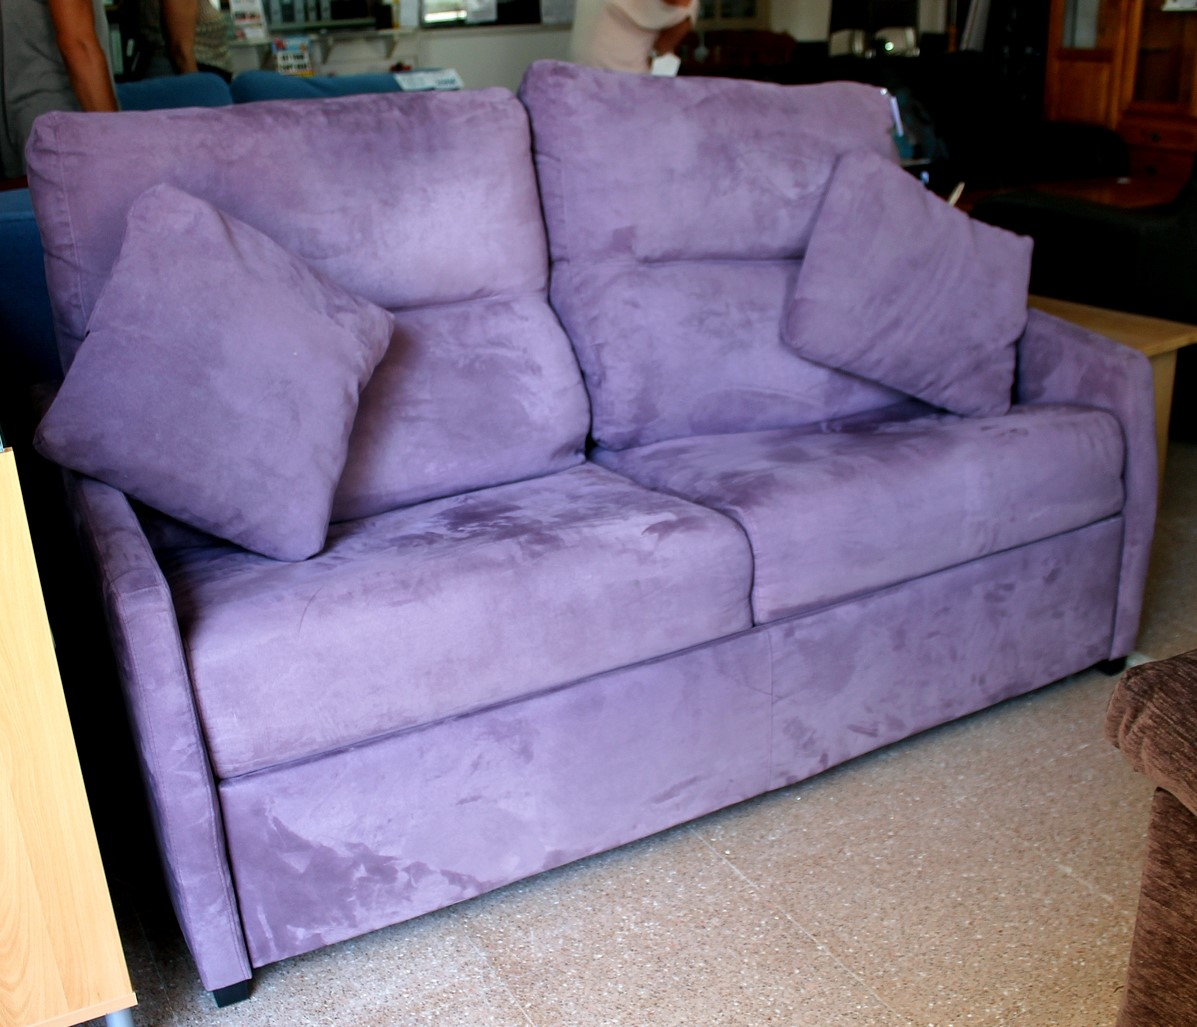 New2you Furniture Second Hand Sofas Sofa Beds For The Bedroom Living Room Ref Xxx17 Torrevieja Spain